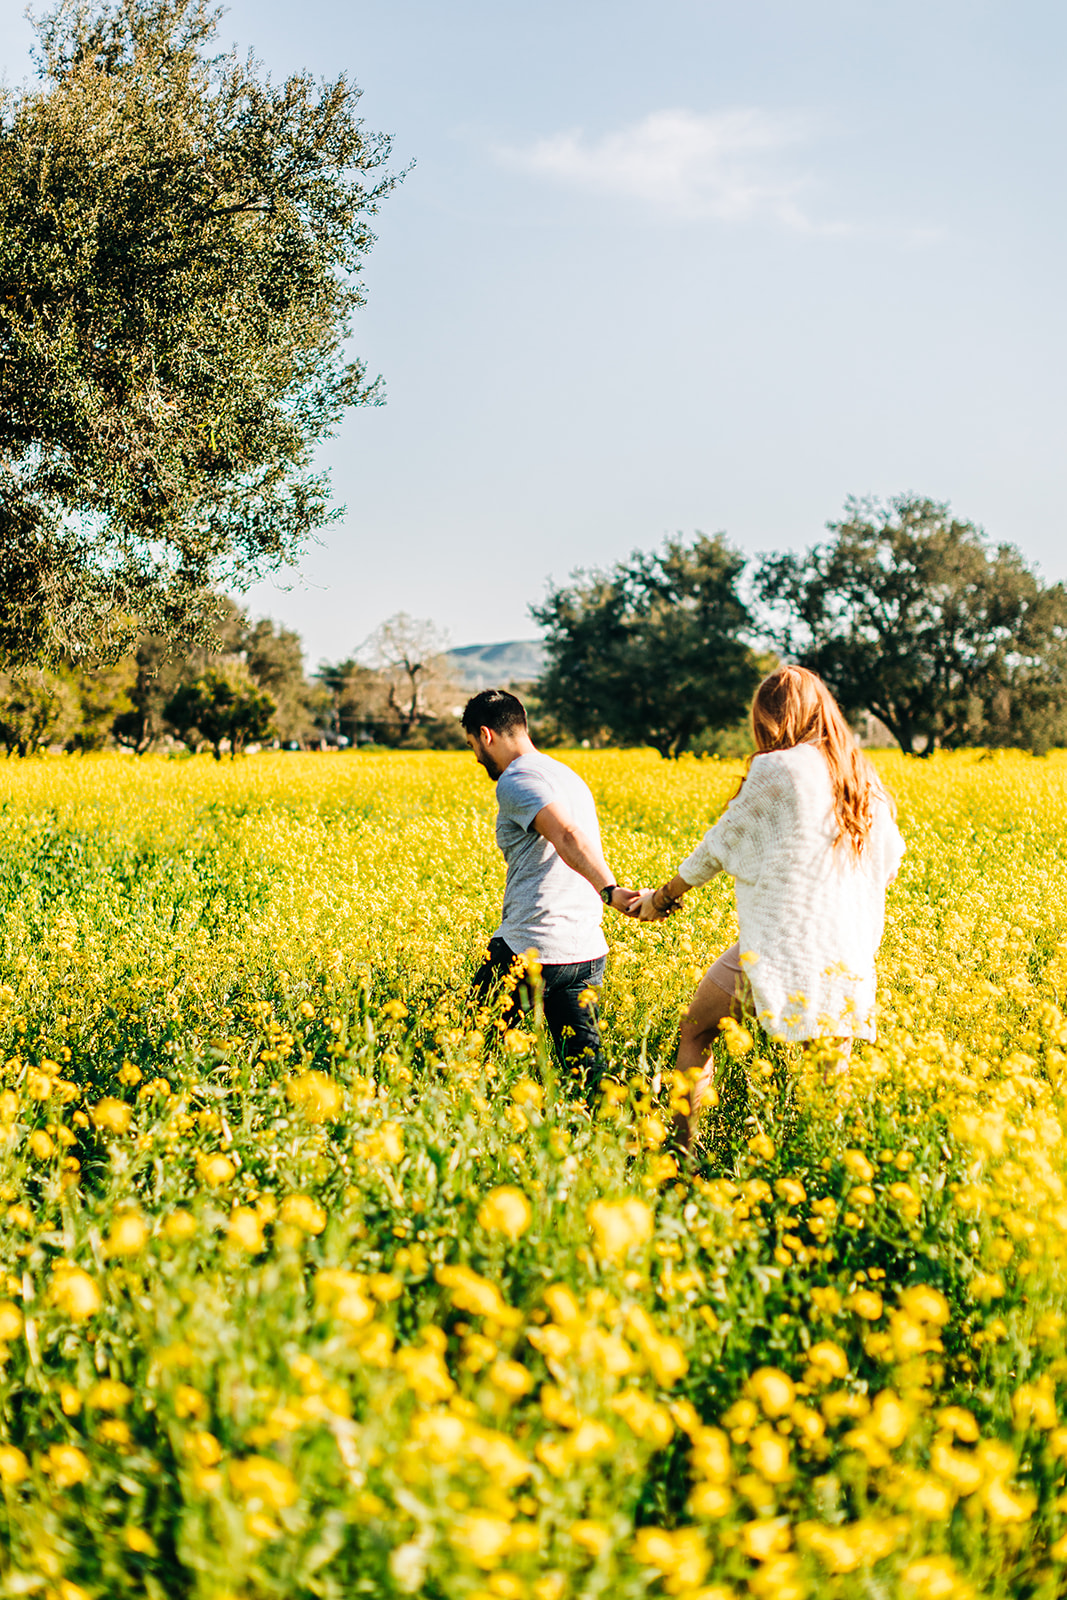 Katie-Yovin_Richard_Superbloom-Engagement-Photos_Clarisse-Rae_Southern-California-Wedding-Photographer-Orange-County-Engagement-Photos-6